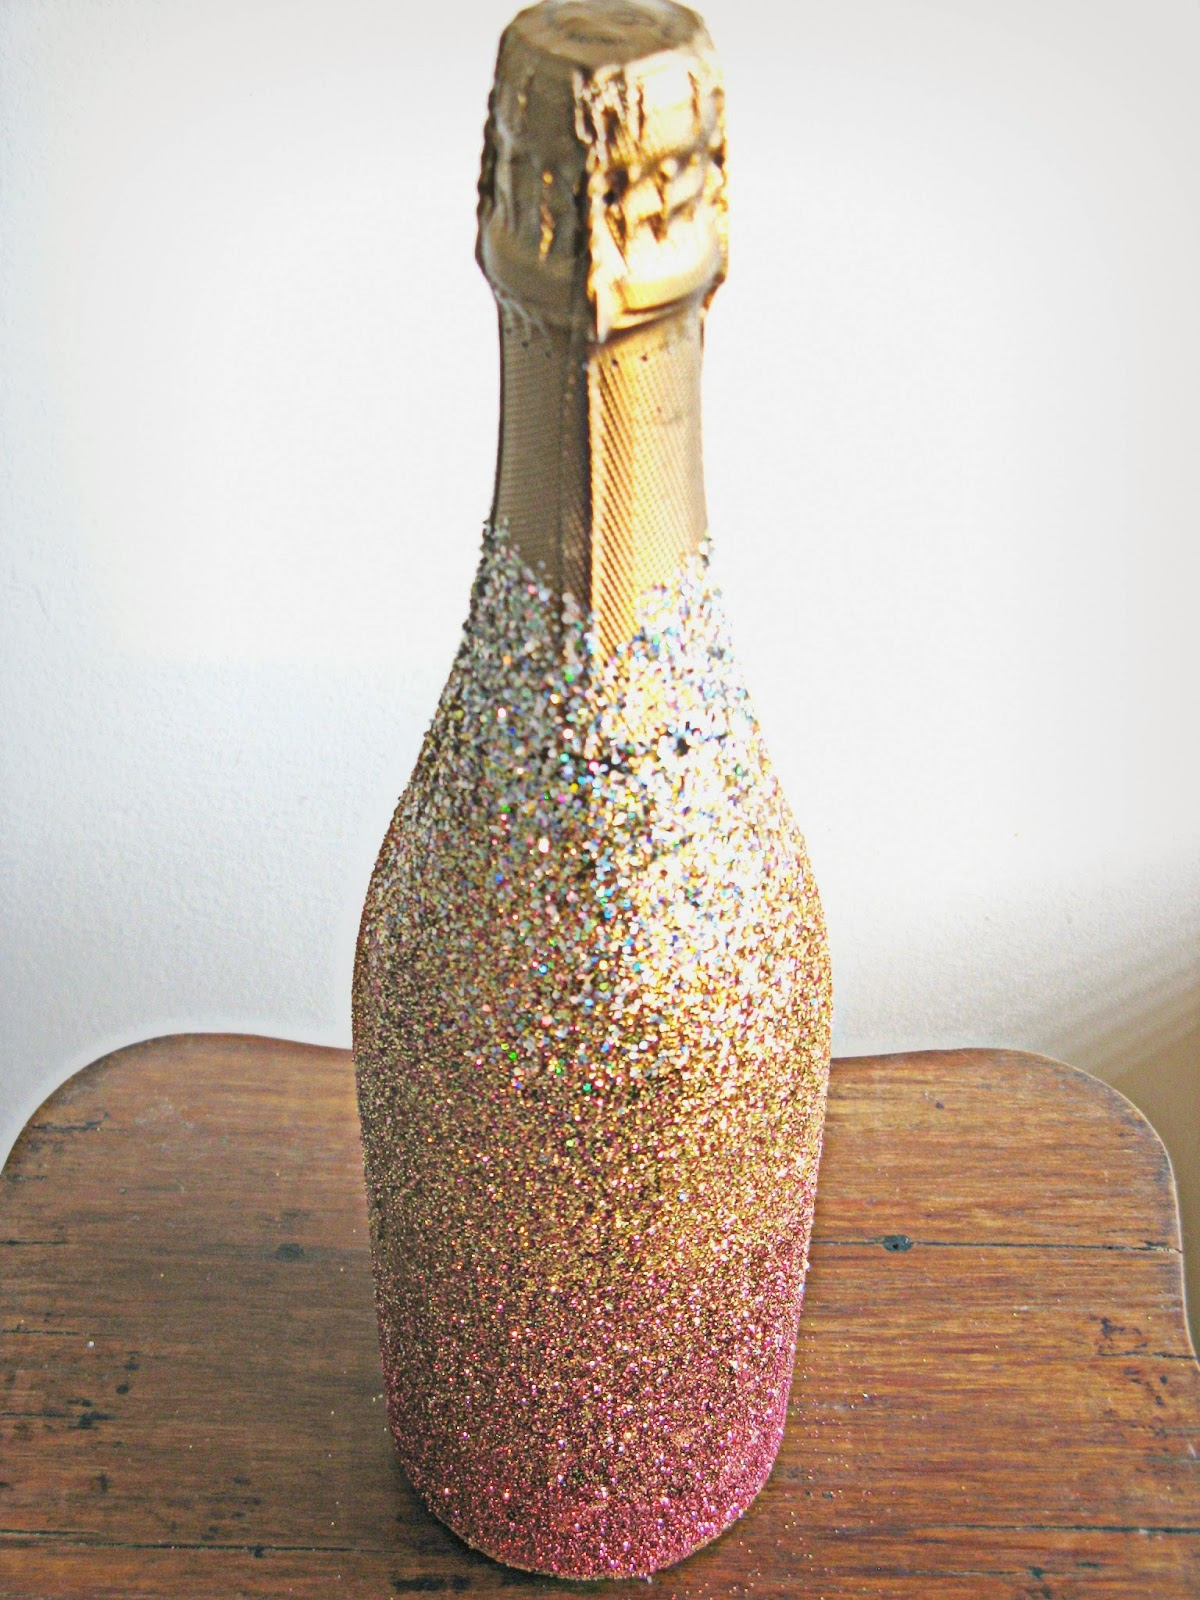 Ombre Glitter Eye Makeup Brushes Set Rose Gold In Make Up: Hunted And Made: DIY Ombre Glitter Champagne Bottle